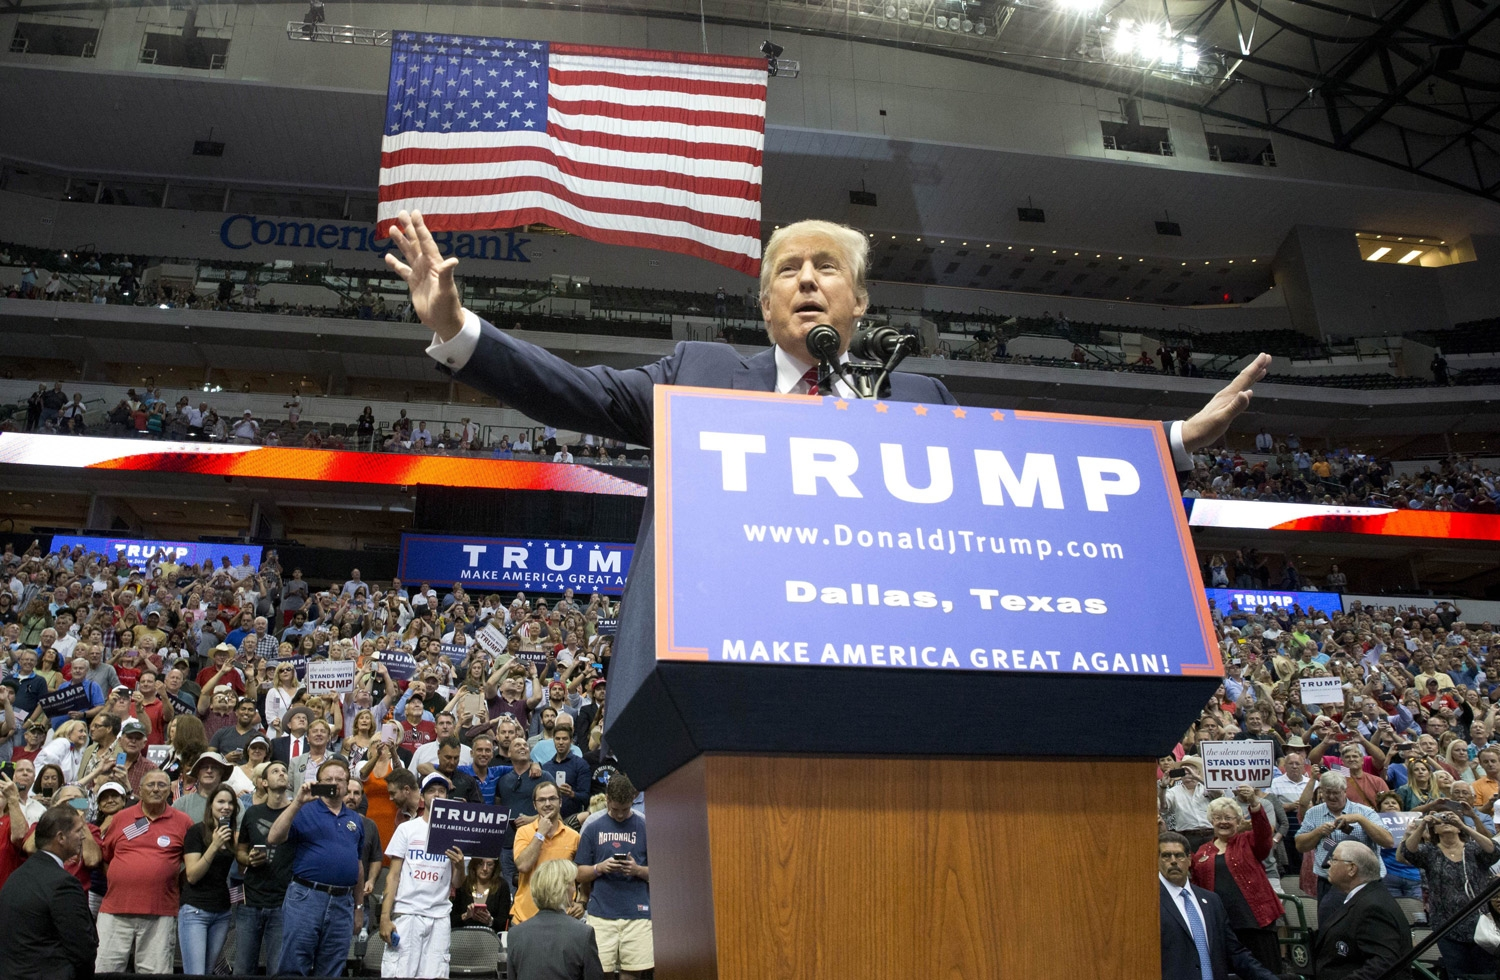 Donald Trump addressed a rally of his supporters in Dallas last year. (Newscom photo)